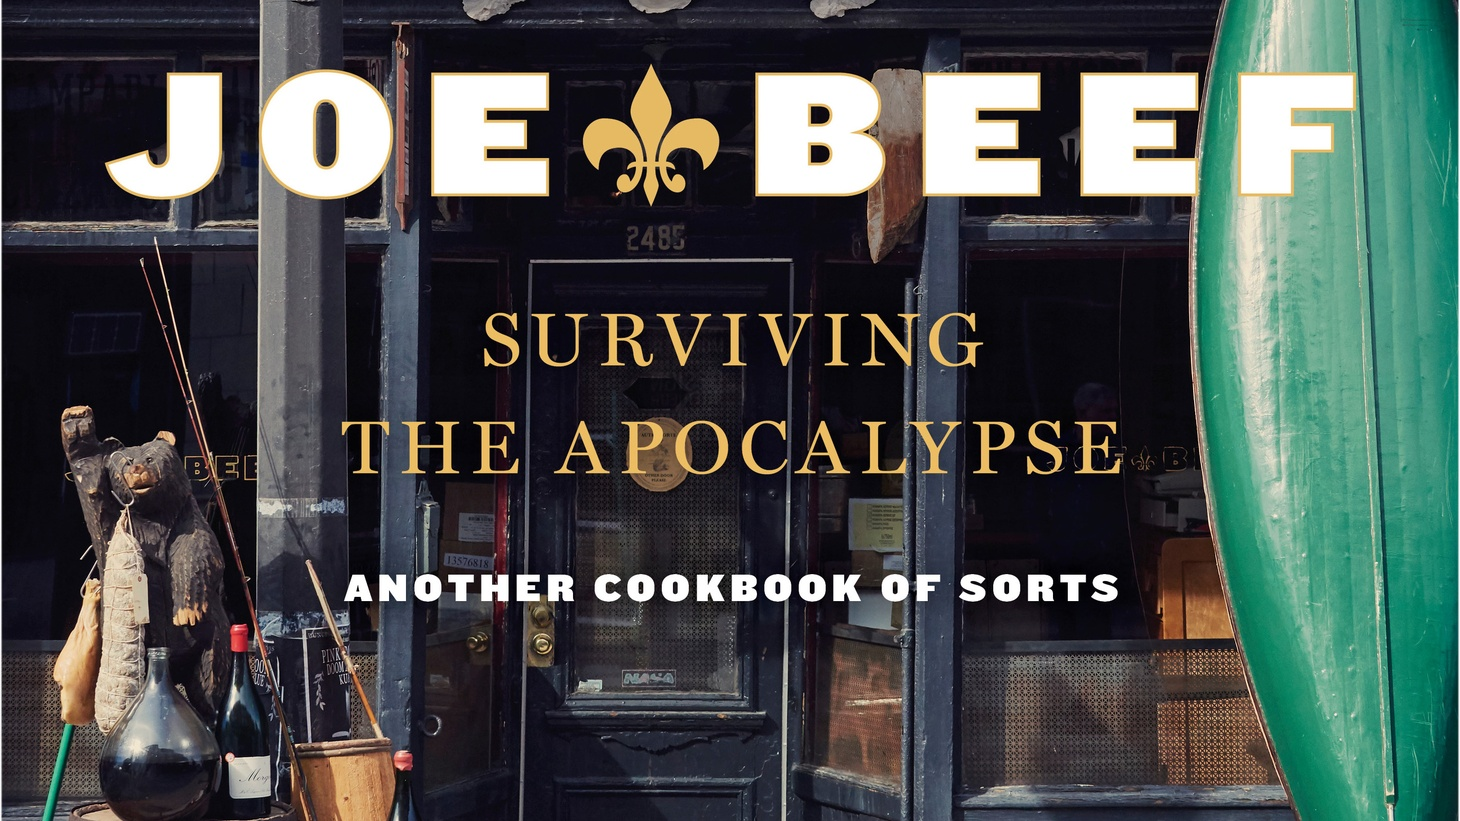 """Joe Beef: Surviving the Apocalypse. Another Cookbook of Sorts"" by Frederic Morin, David McMillan, and Meredith Erickson."